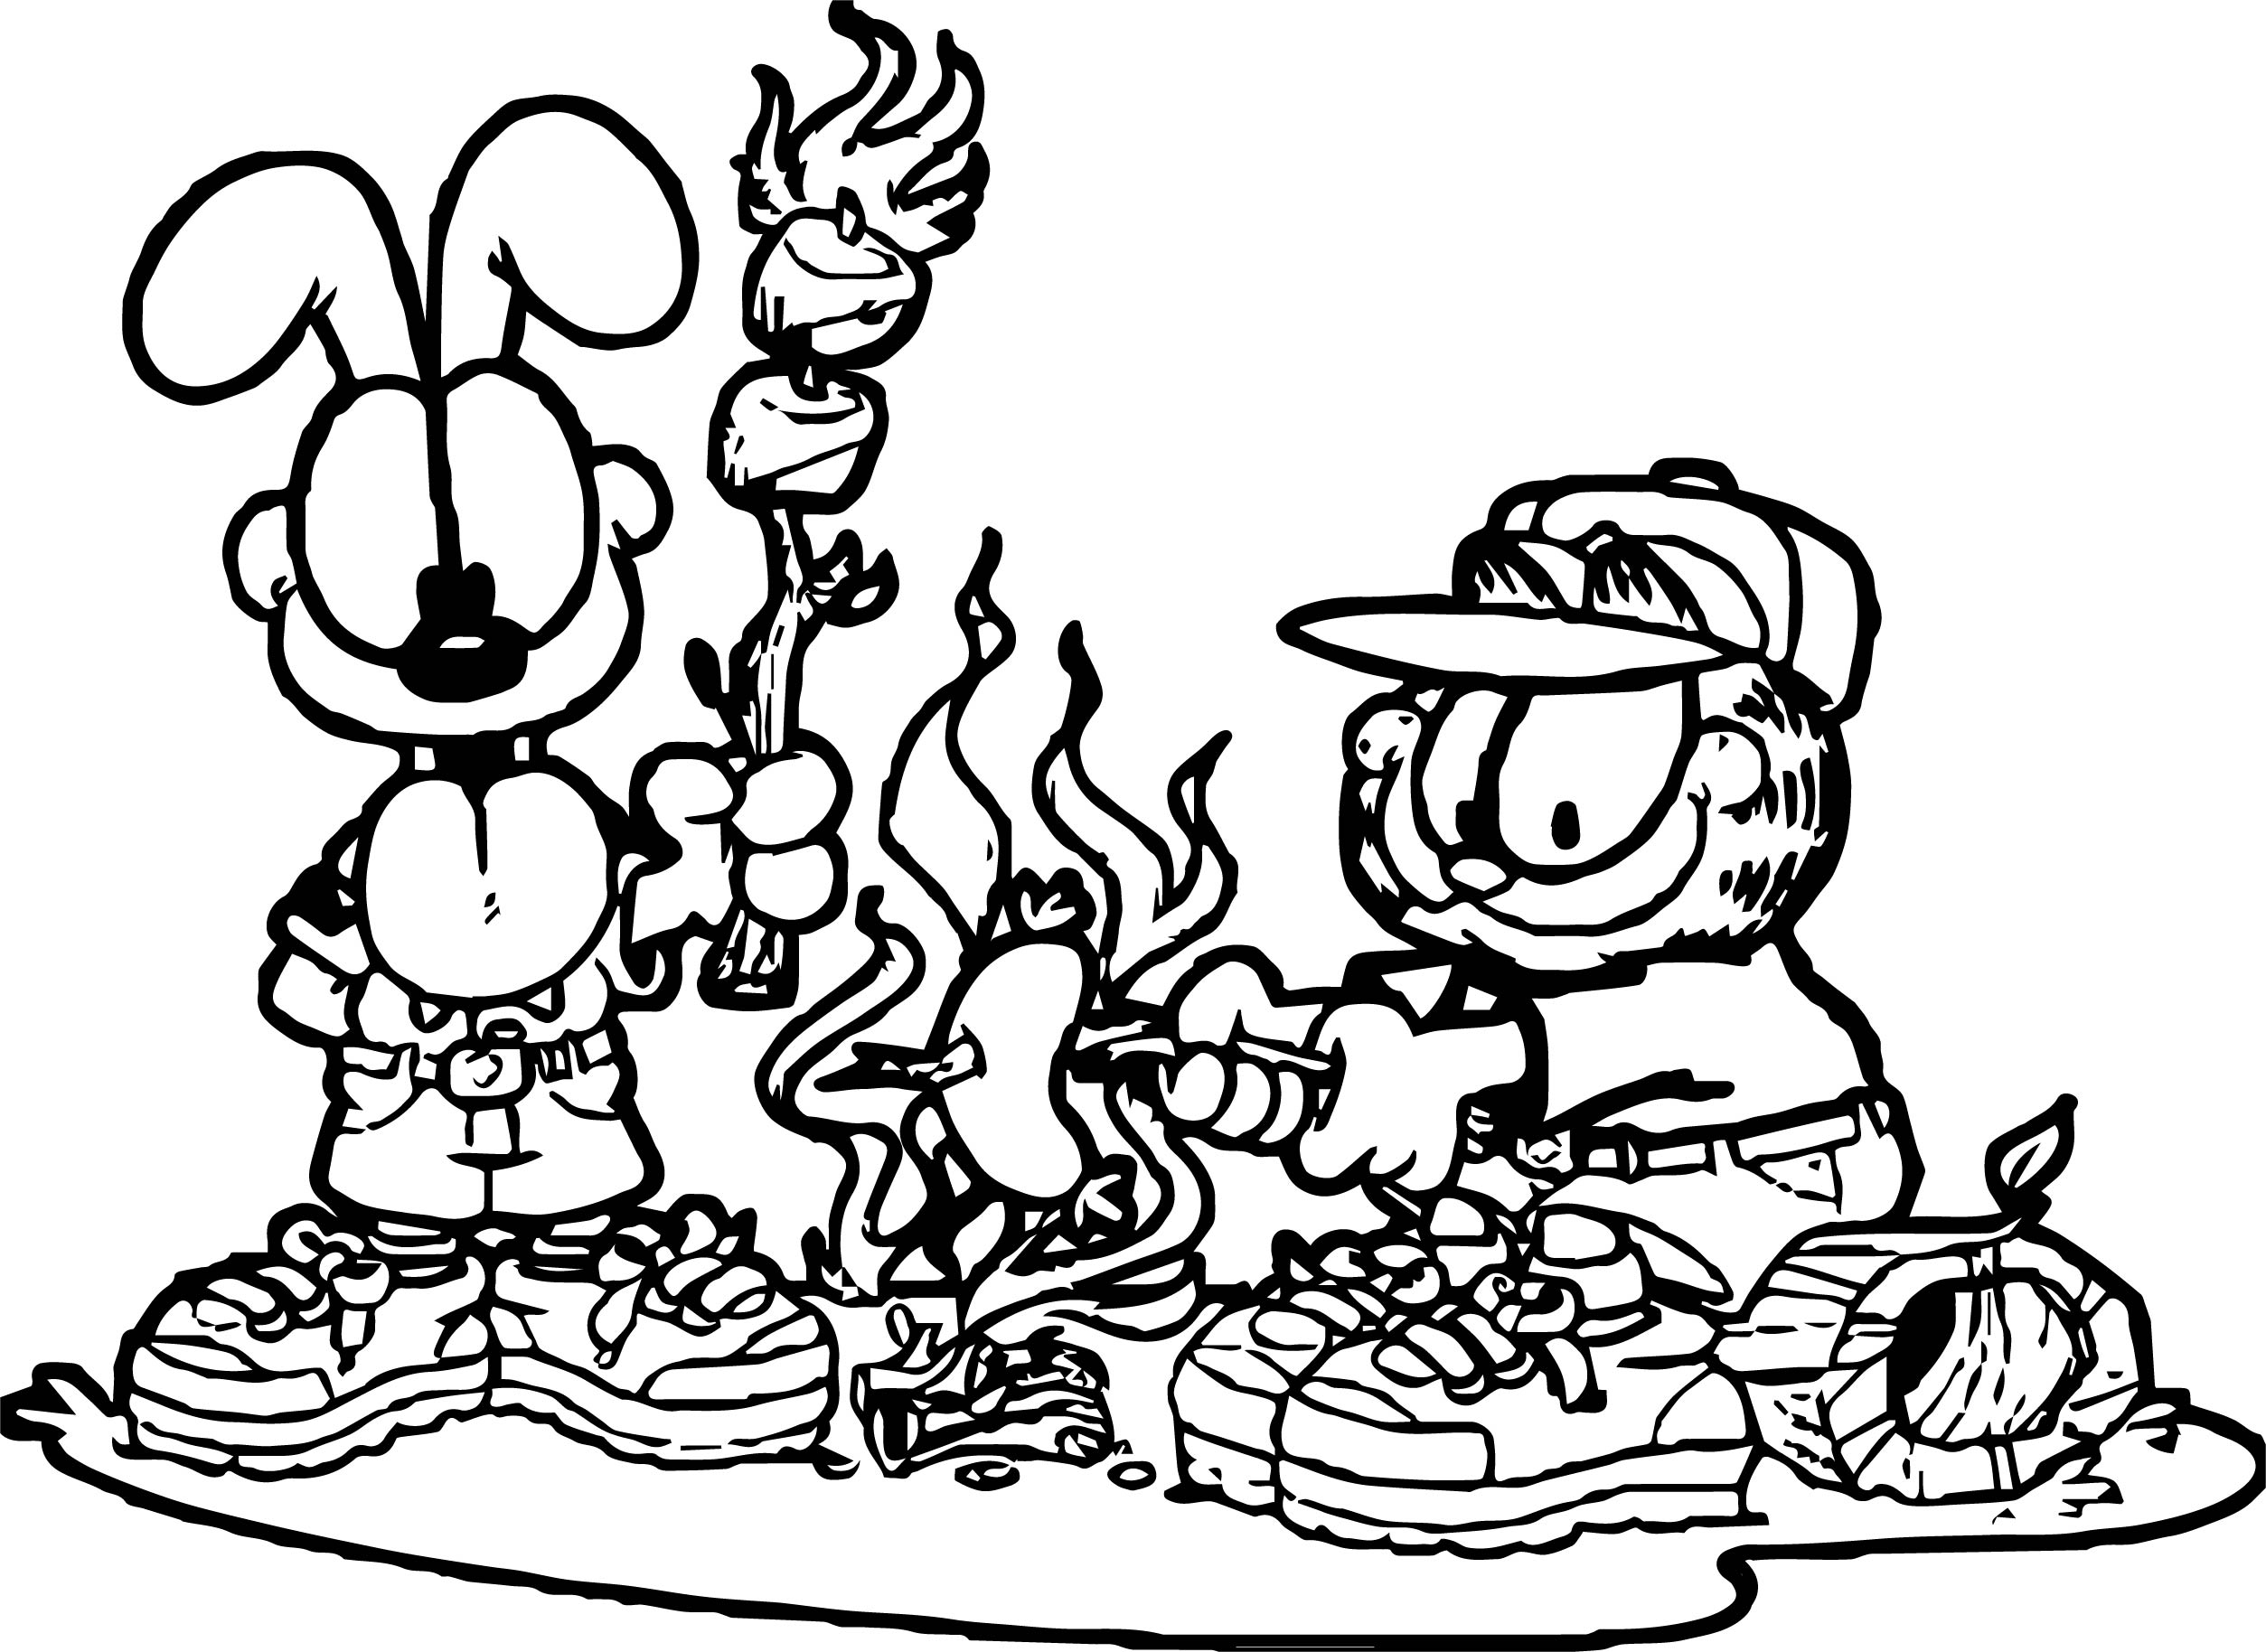 Camping Garfield Coloring Page